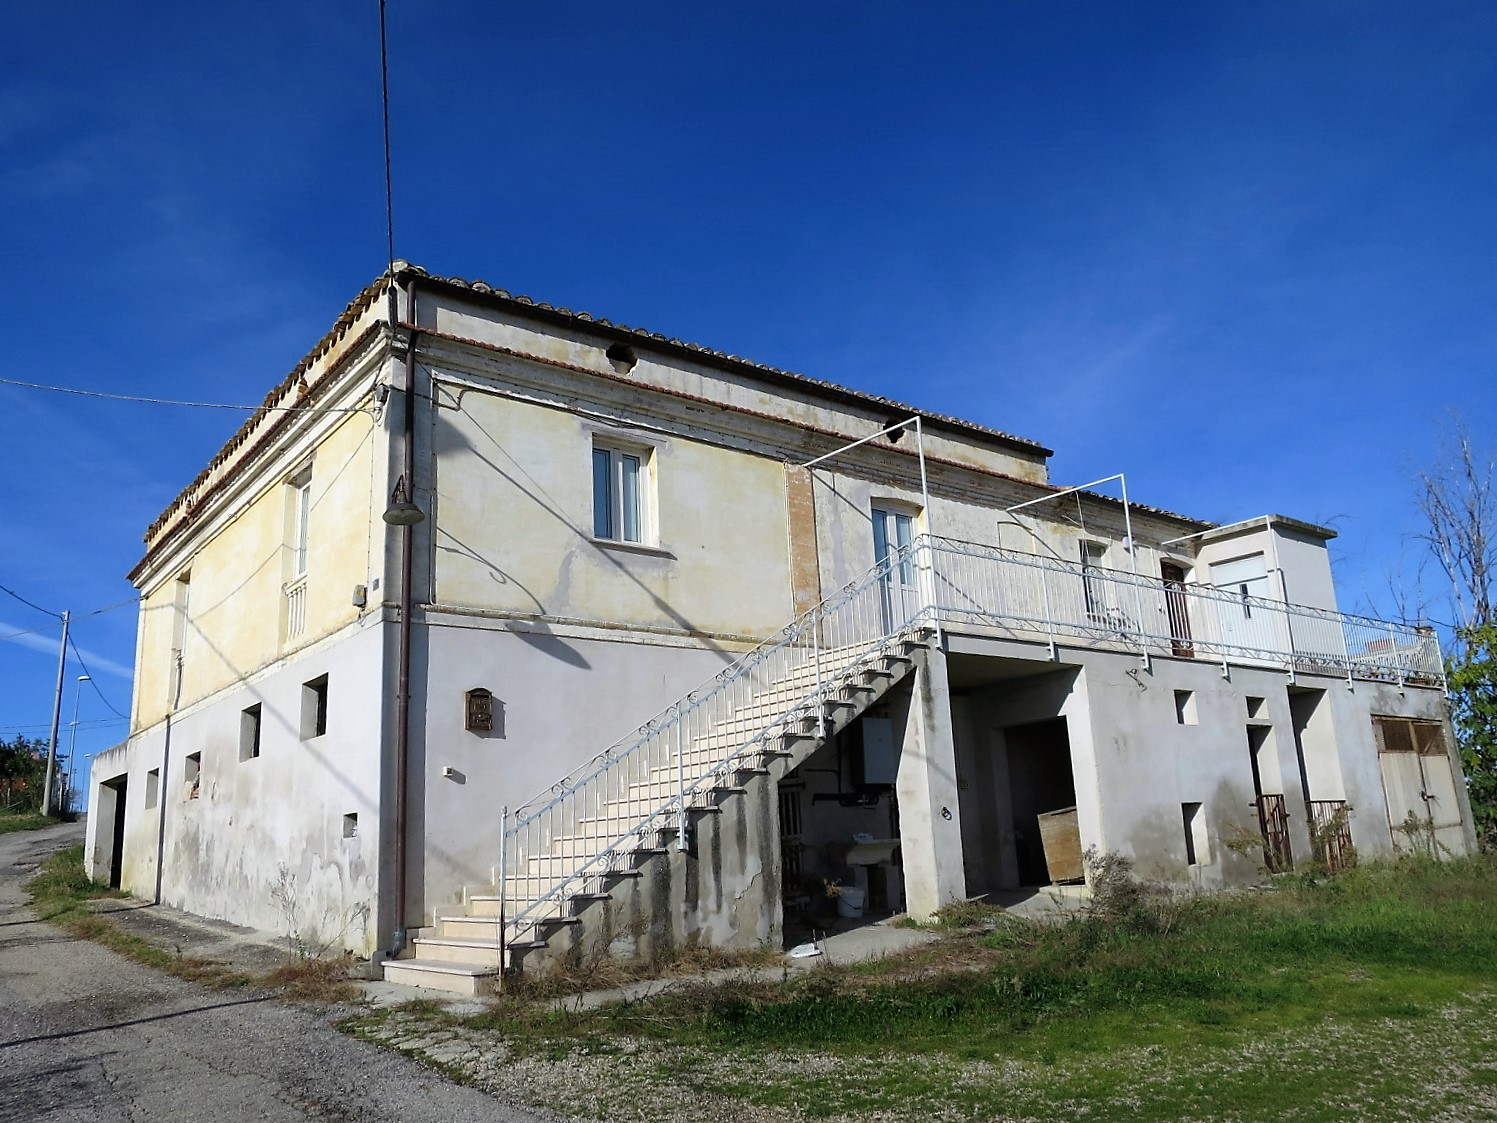 Country Houses Country Houses for sale Elice (PE), Casa Frantoio - Elice - EUR 182.886 170